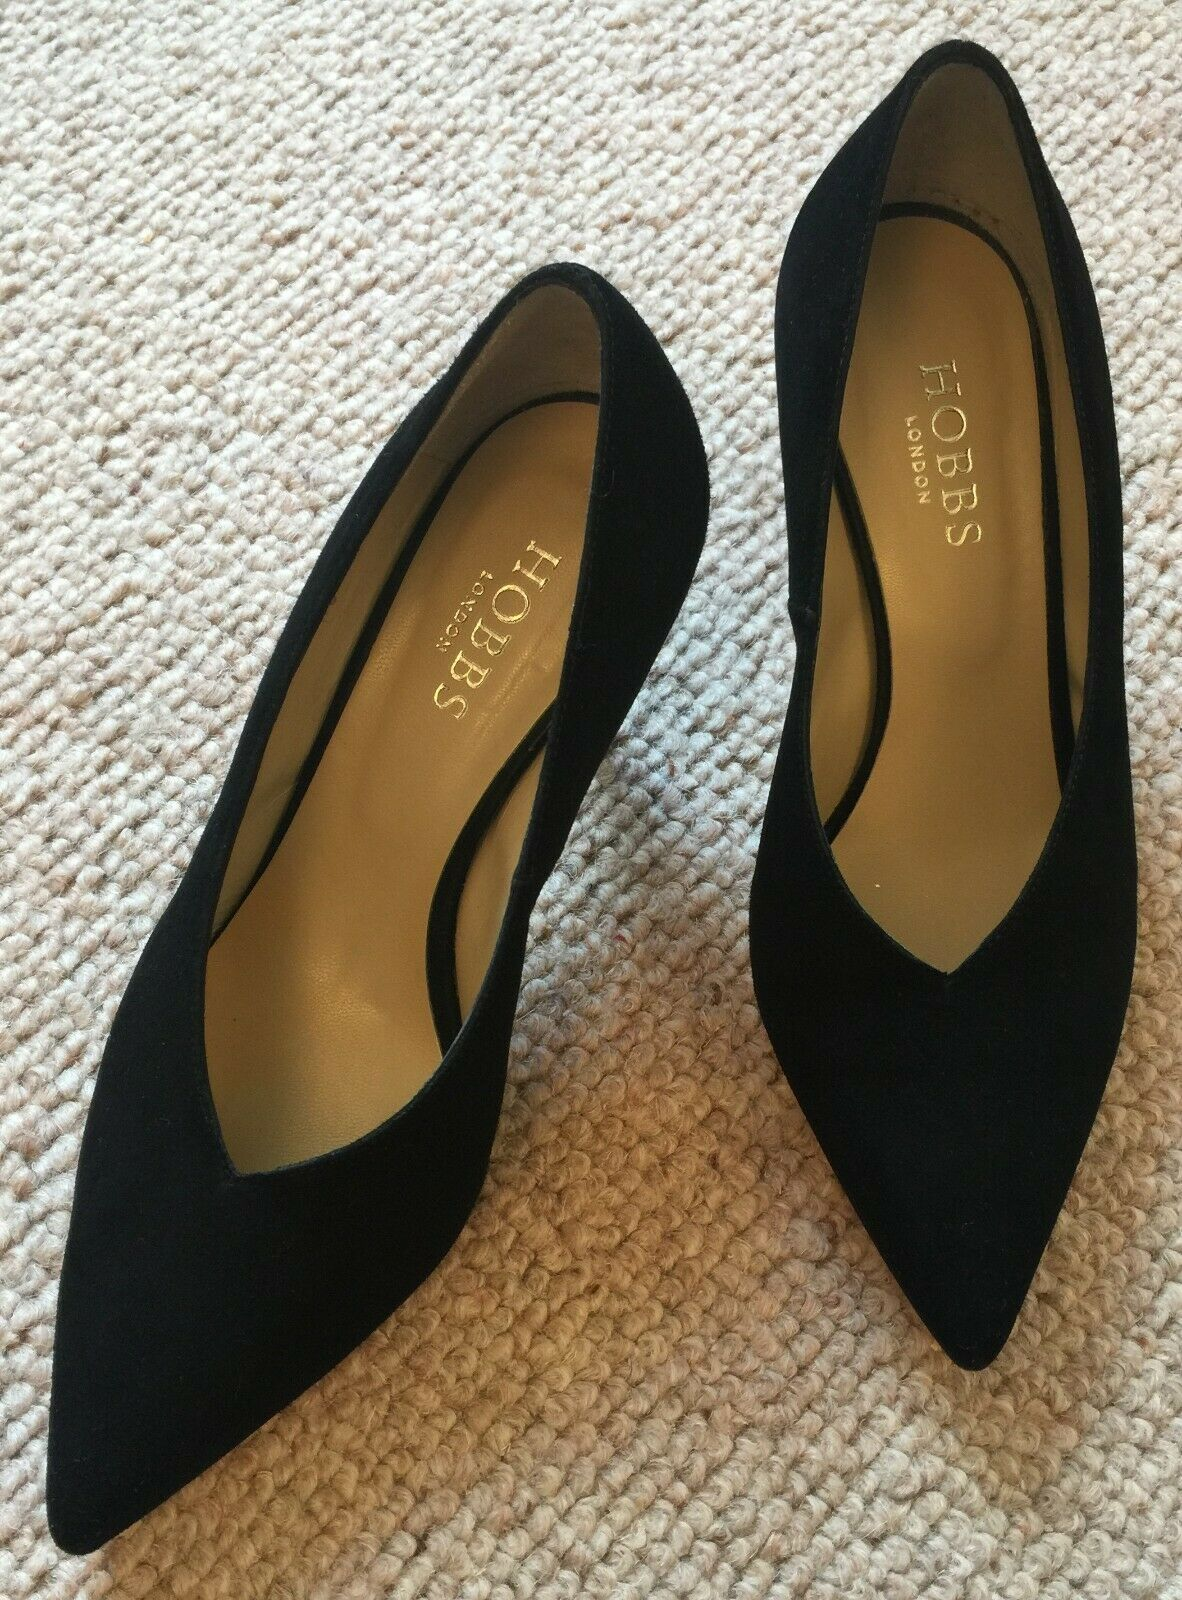 Hobbs Black Court Shoes - 1980's Style - Suede - UK 5.5 - RRP - Worn Once